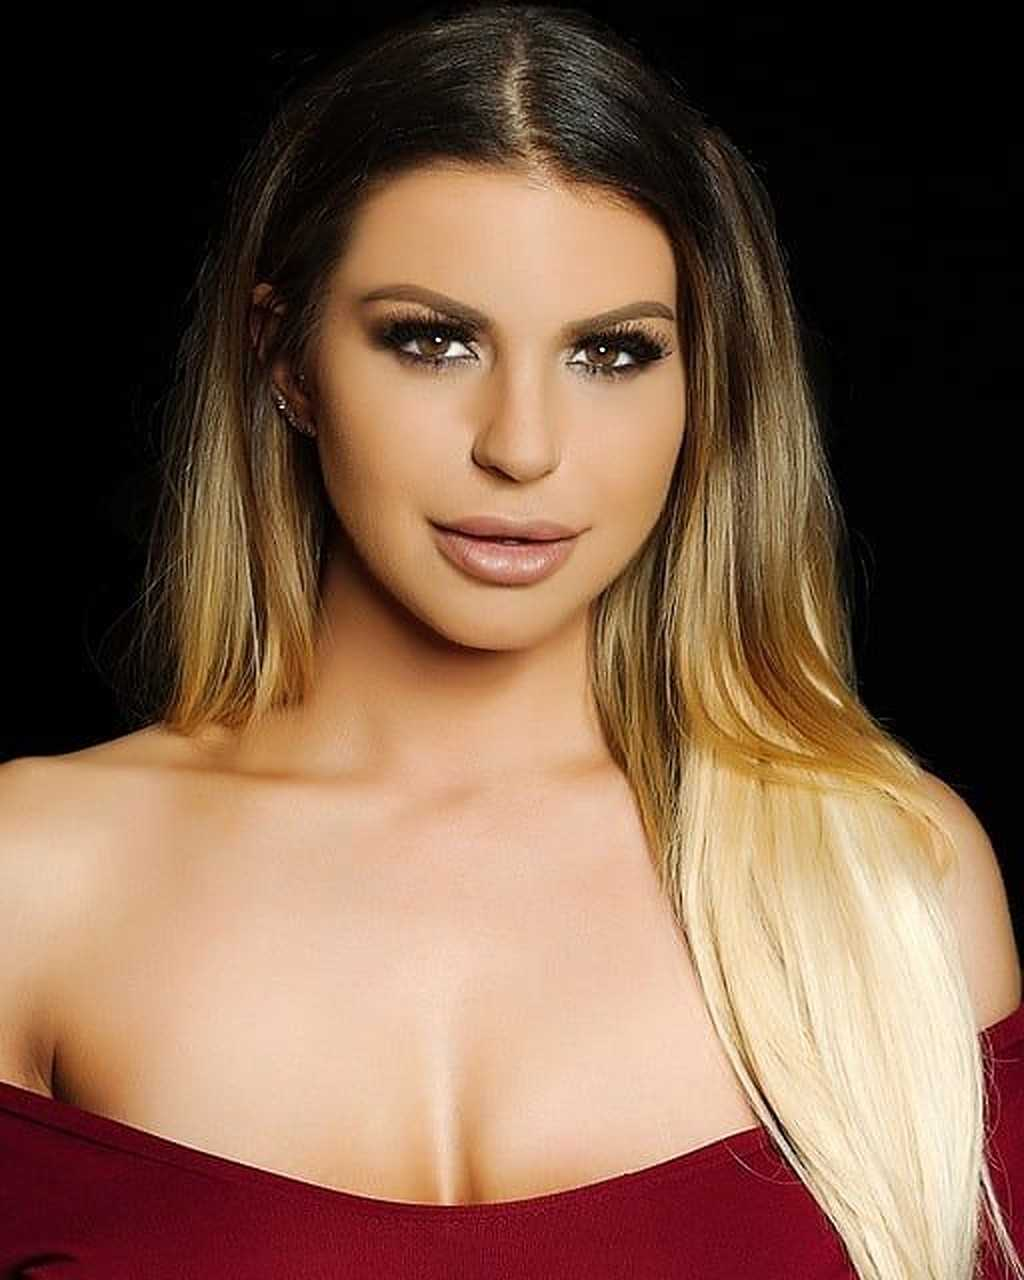 Brooklyn Chase Bio, Wiki, Age, Net Worth, Pics, Family